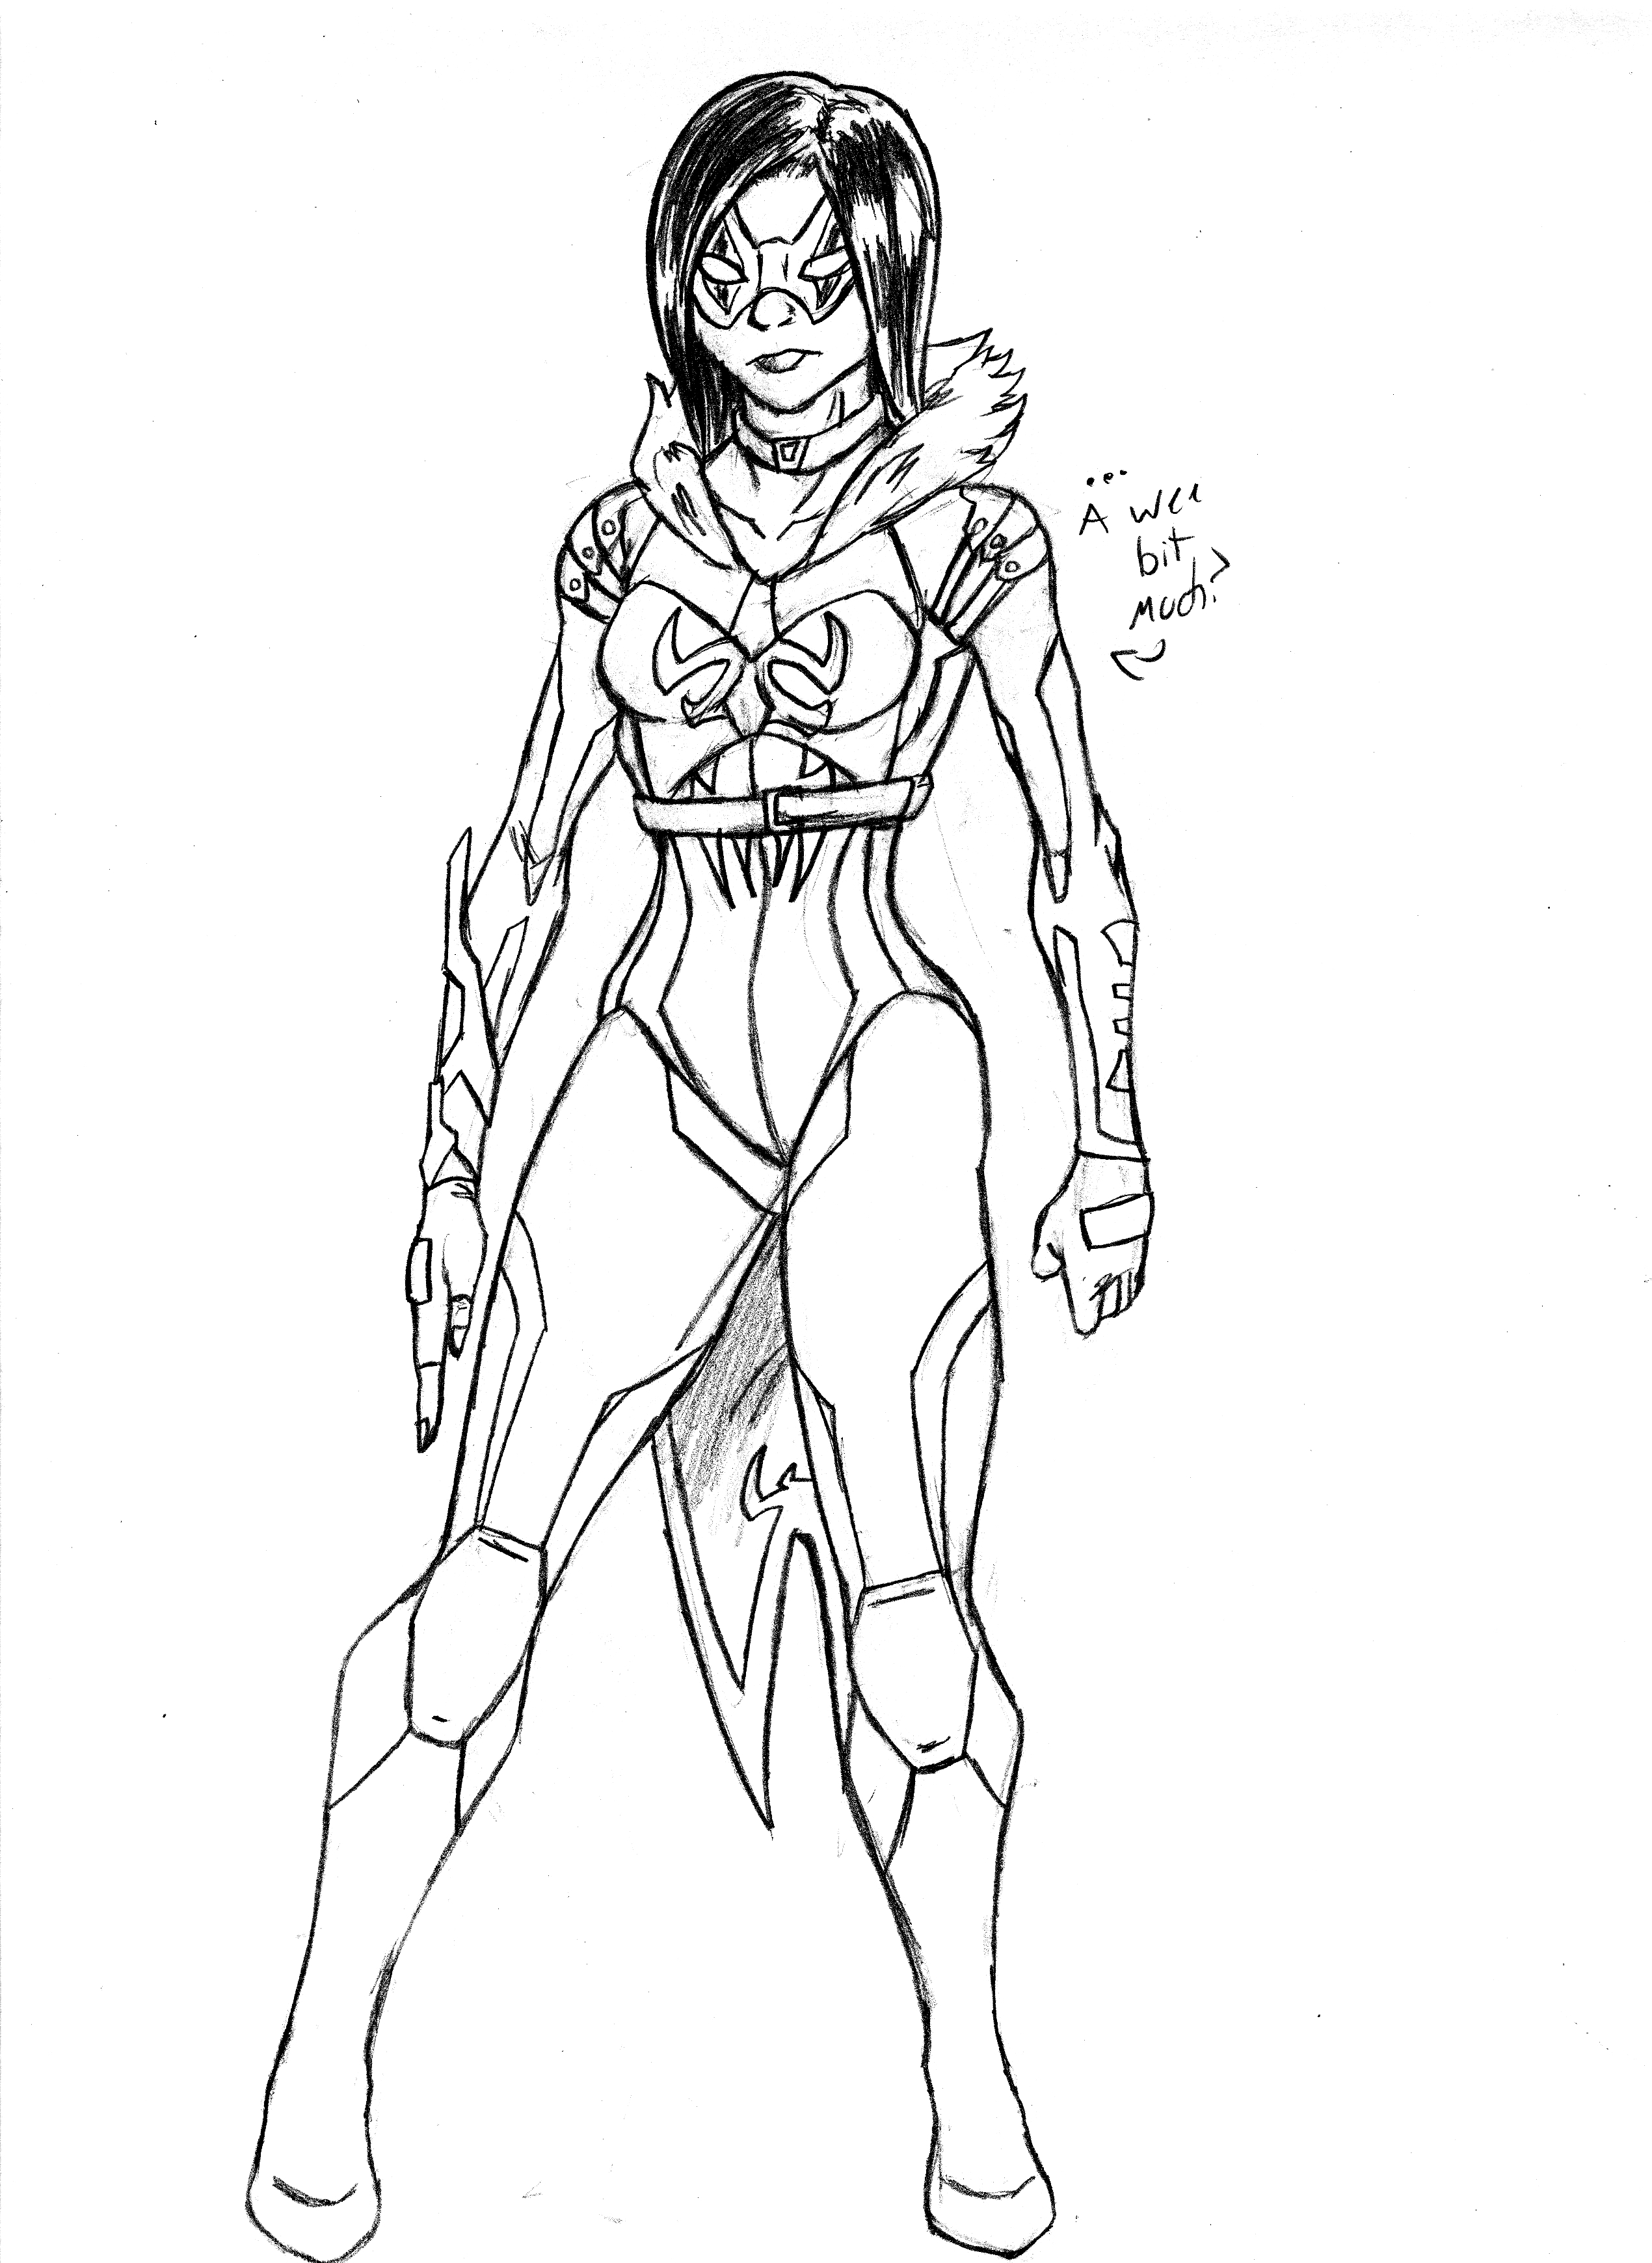 Spider Woman Coloring Pages at GetDrawings.com | Free for ...